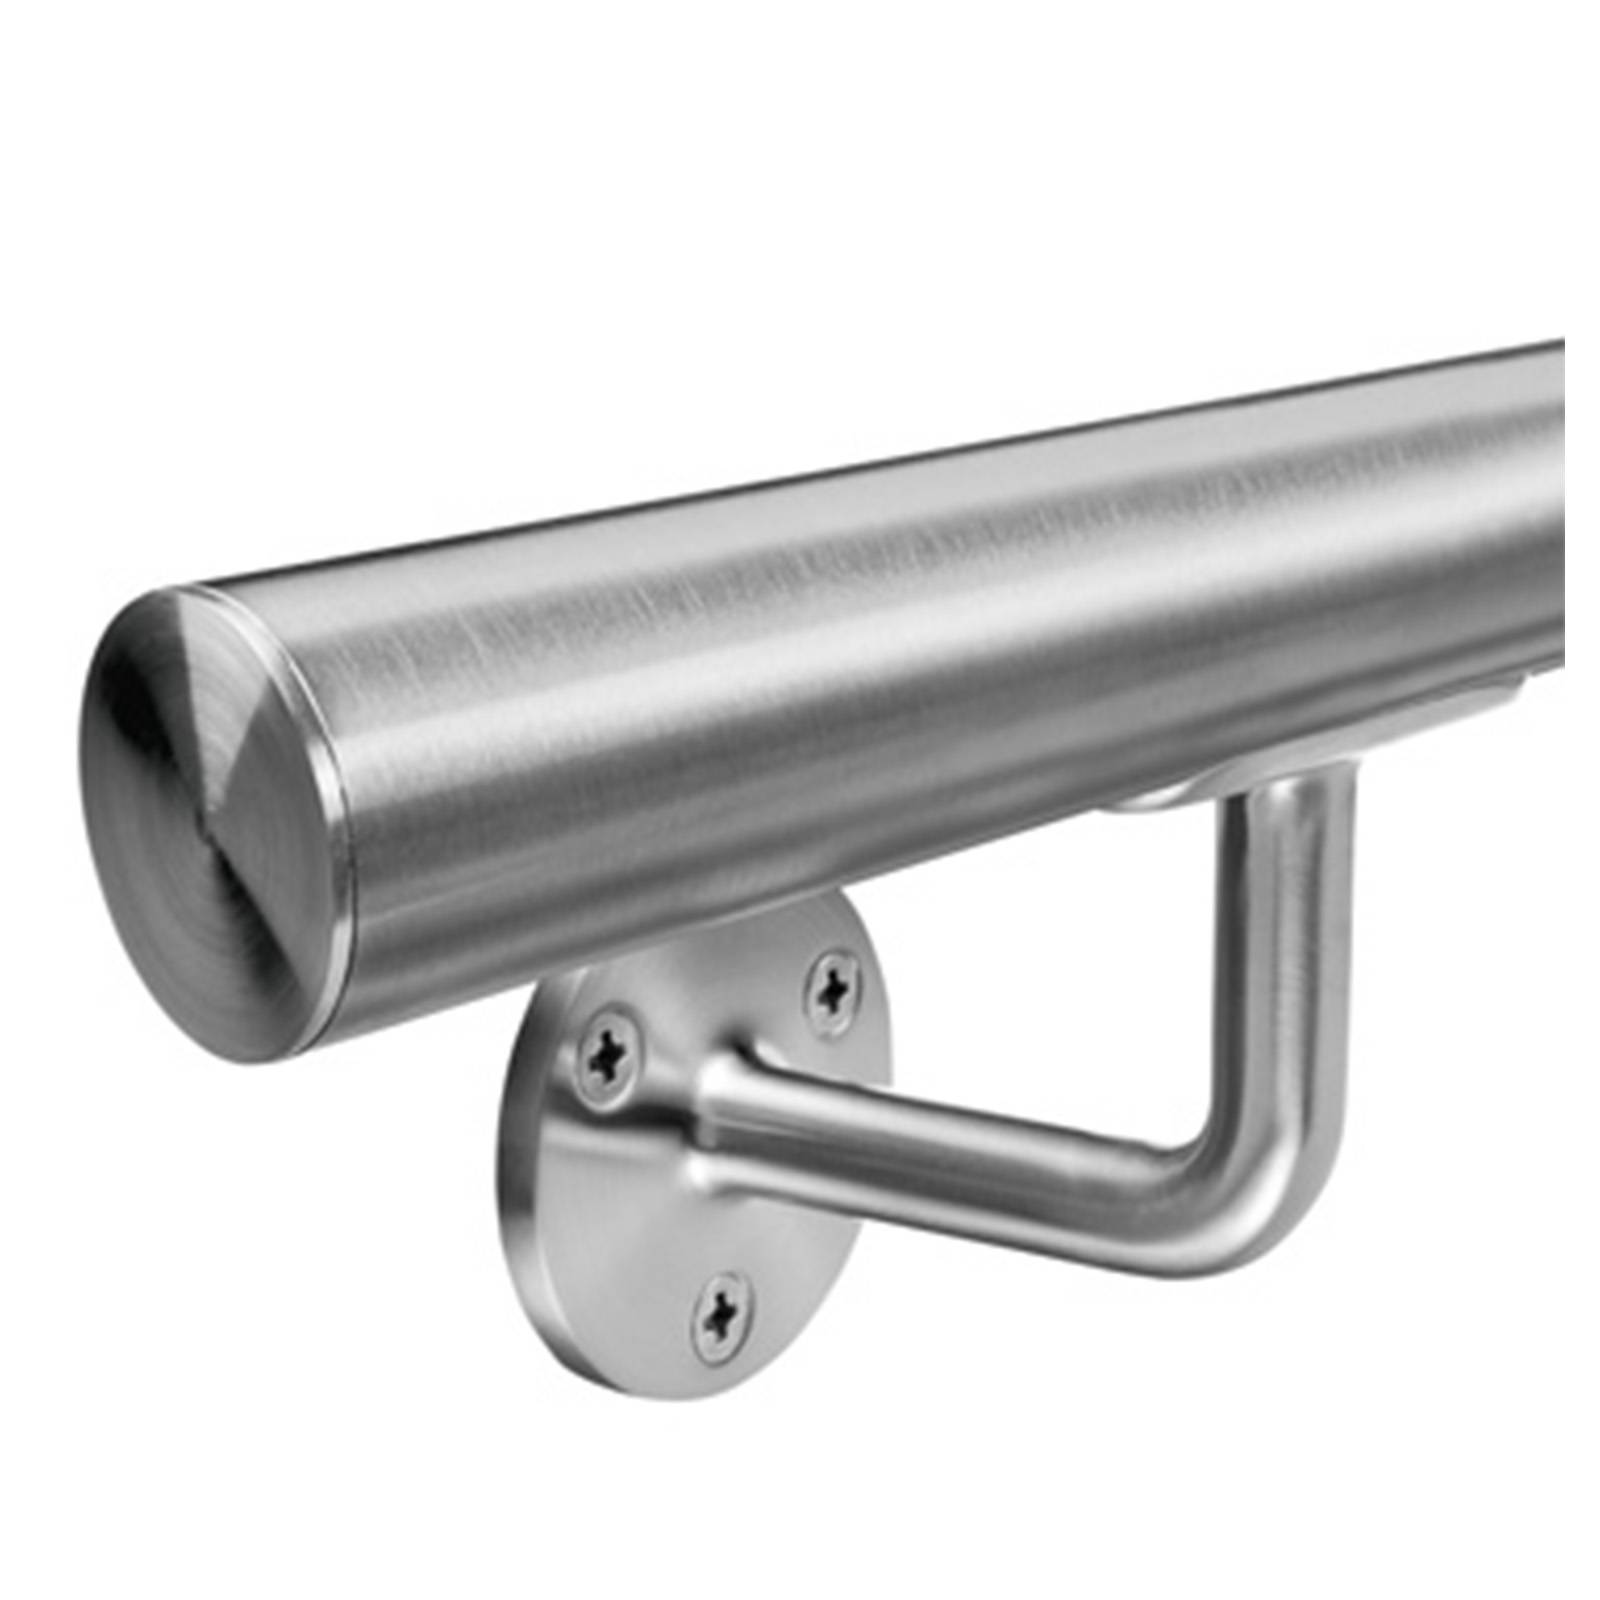 Stainless Steel Handrail Stair Railing Wall Mounted ...